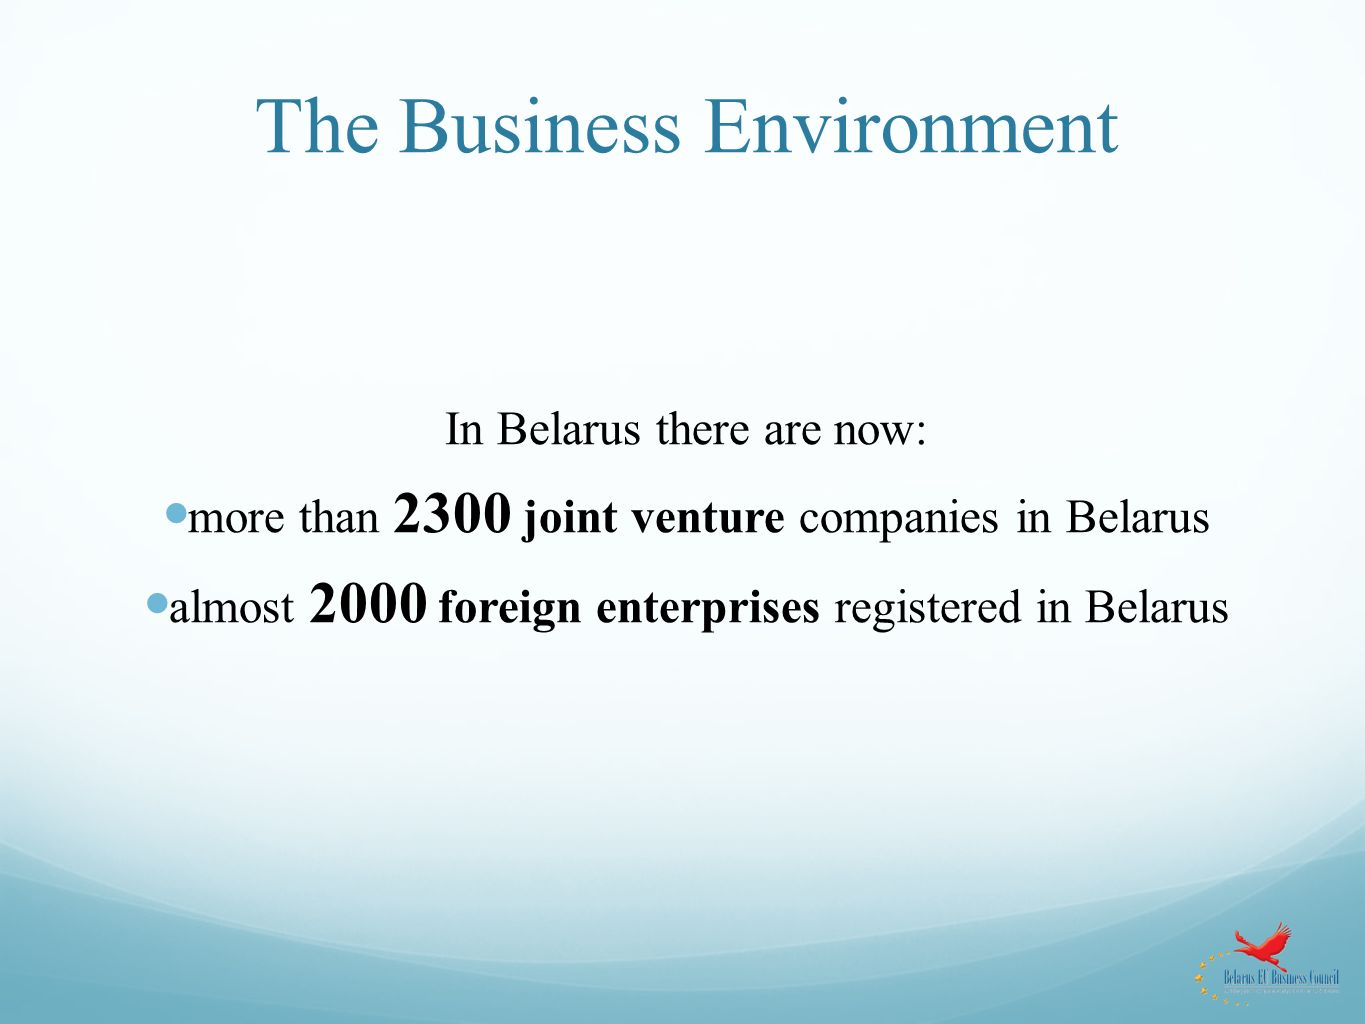 the business environment University of reading is there a better way to analyse the business environment by rj collins student number: 83000716 management challenge submitted in partial fulfilment of the requirements for the.